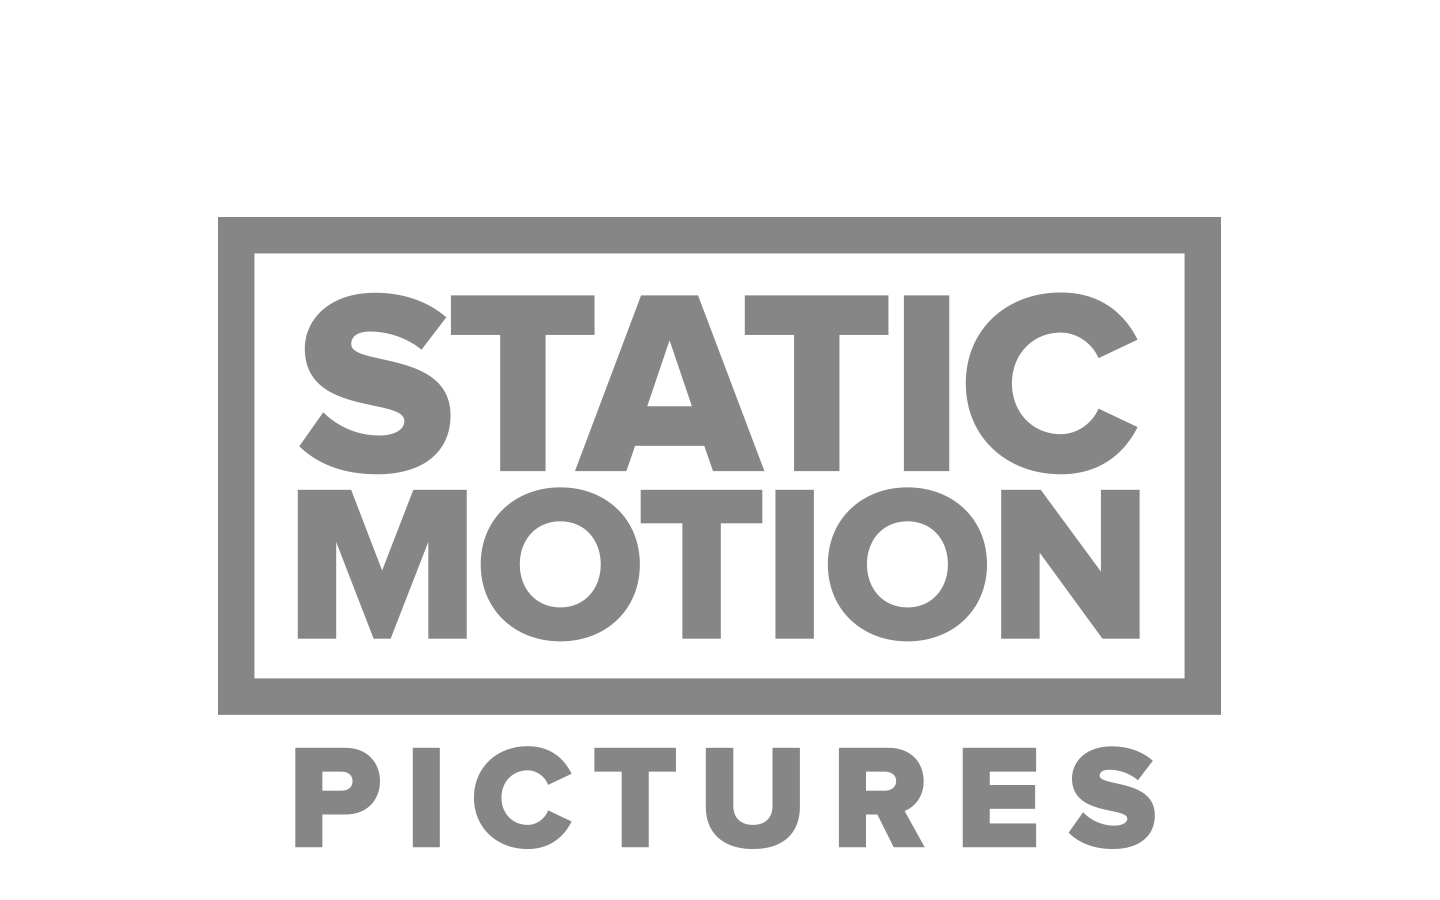 STATIC MOTION PICTURES